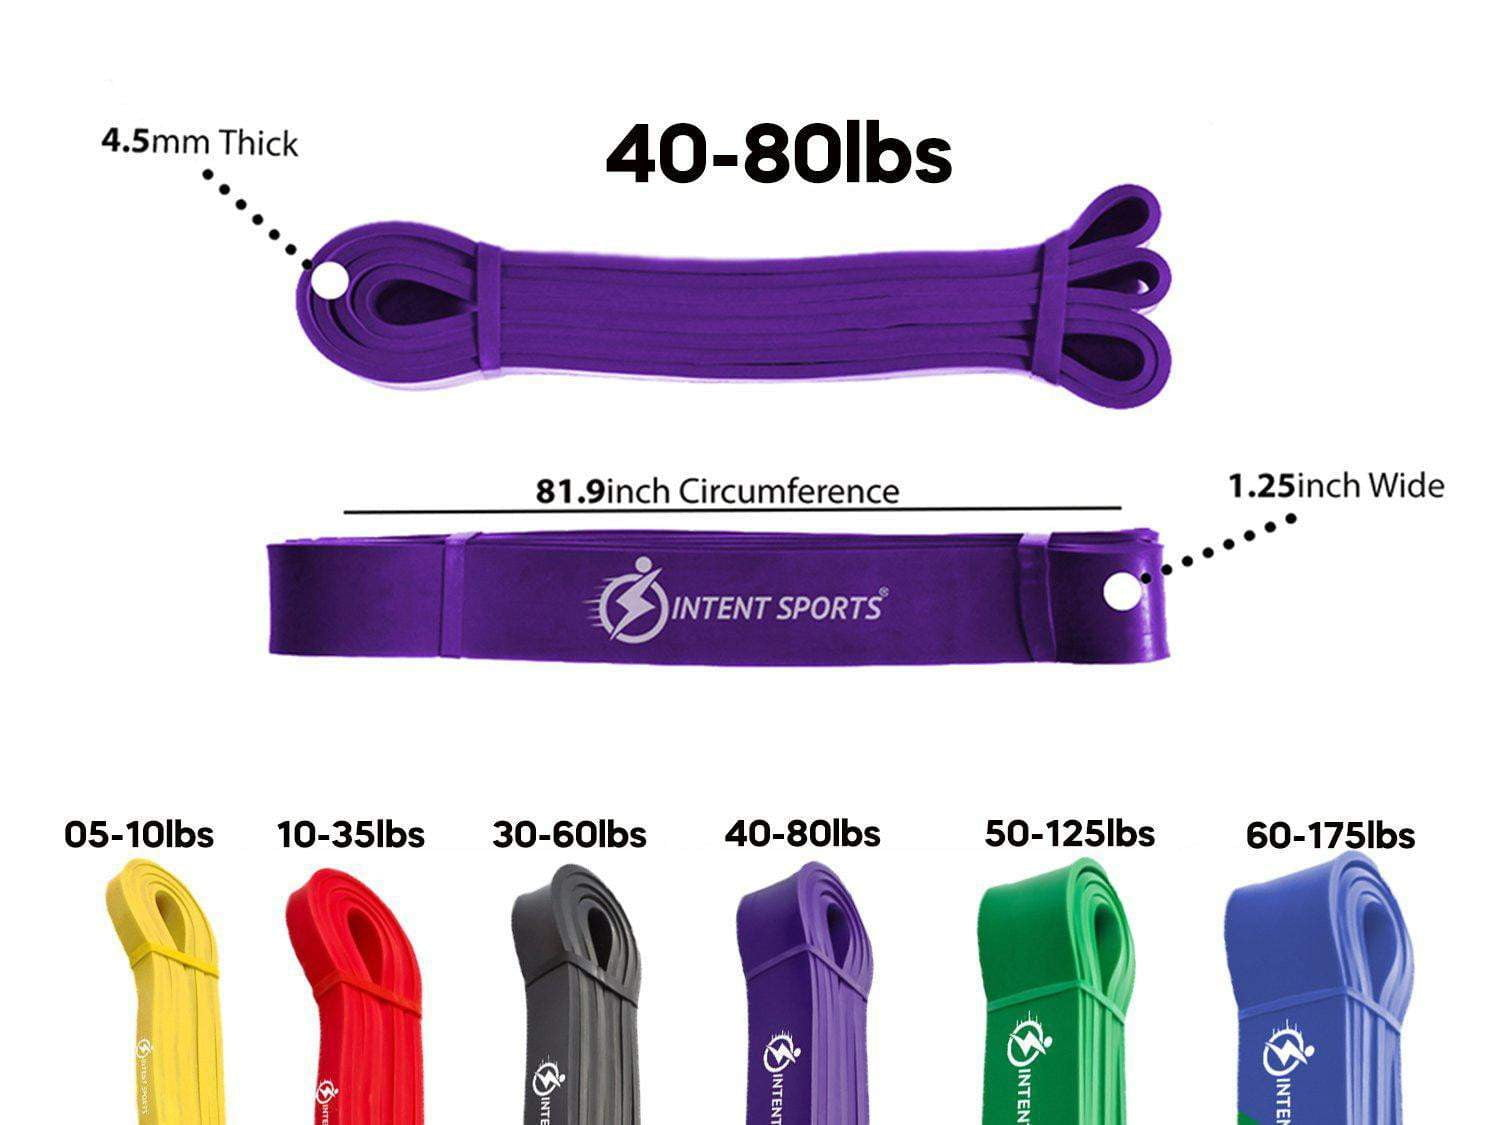 INTENT SPORTS Pull Up Assist Bands - Single/Set